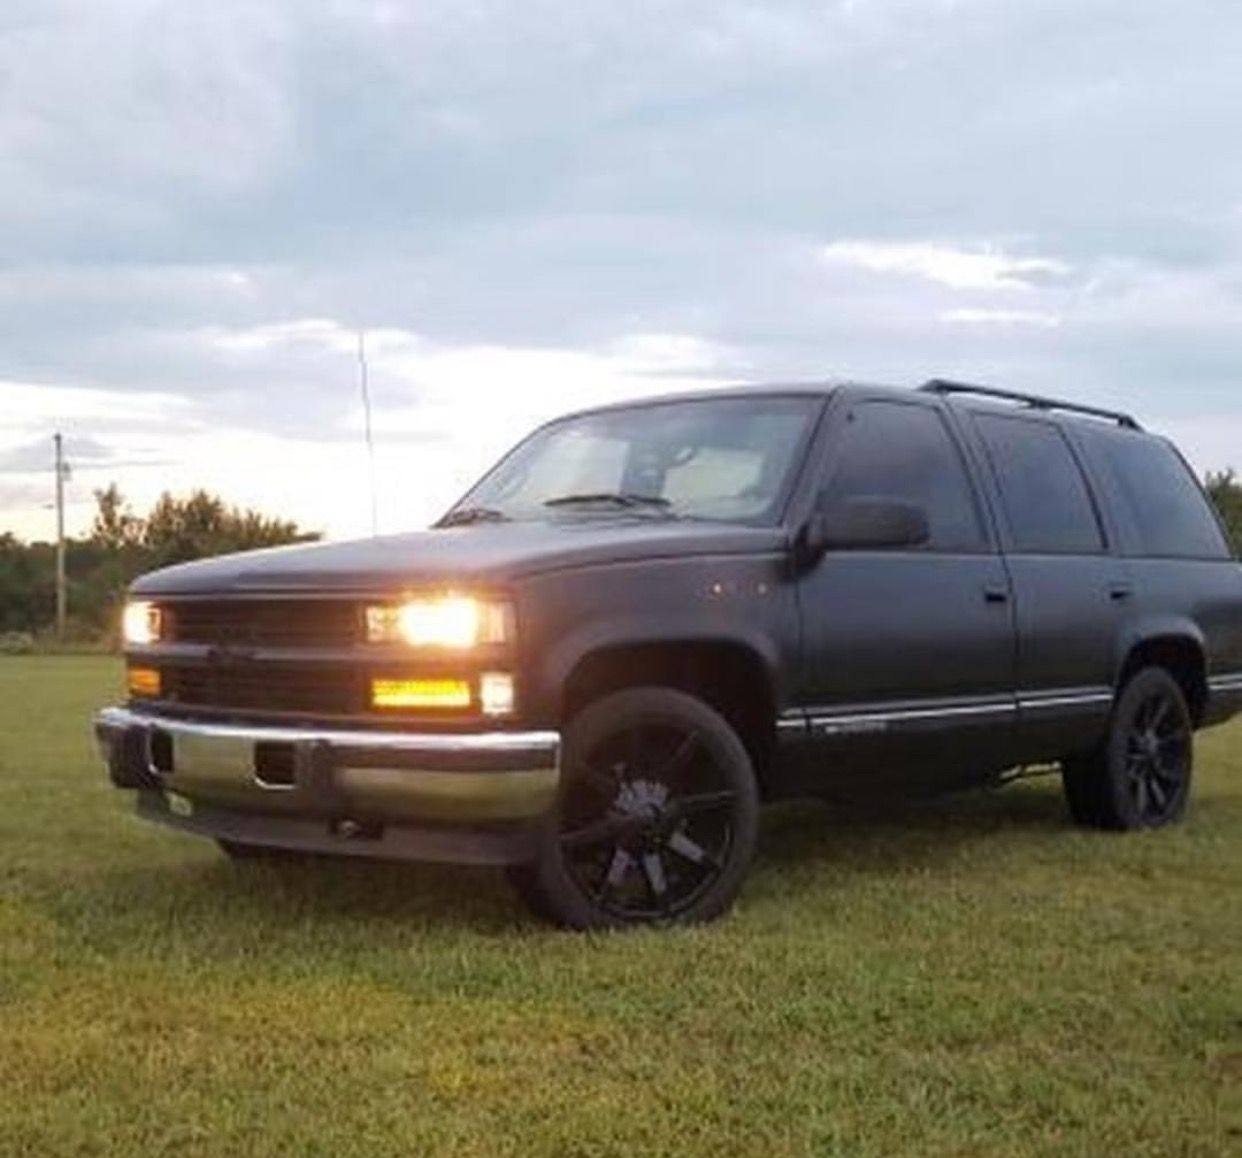 Tahoe 95 chevy tahoe specs : Pin by Michael Hathaway on Chevy Tahoe OBS 1995-2000   Pinterest